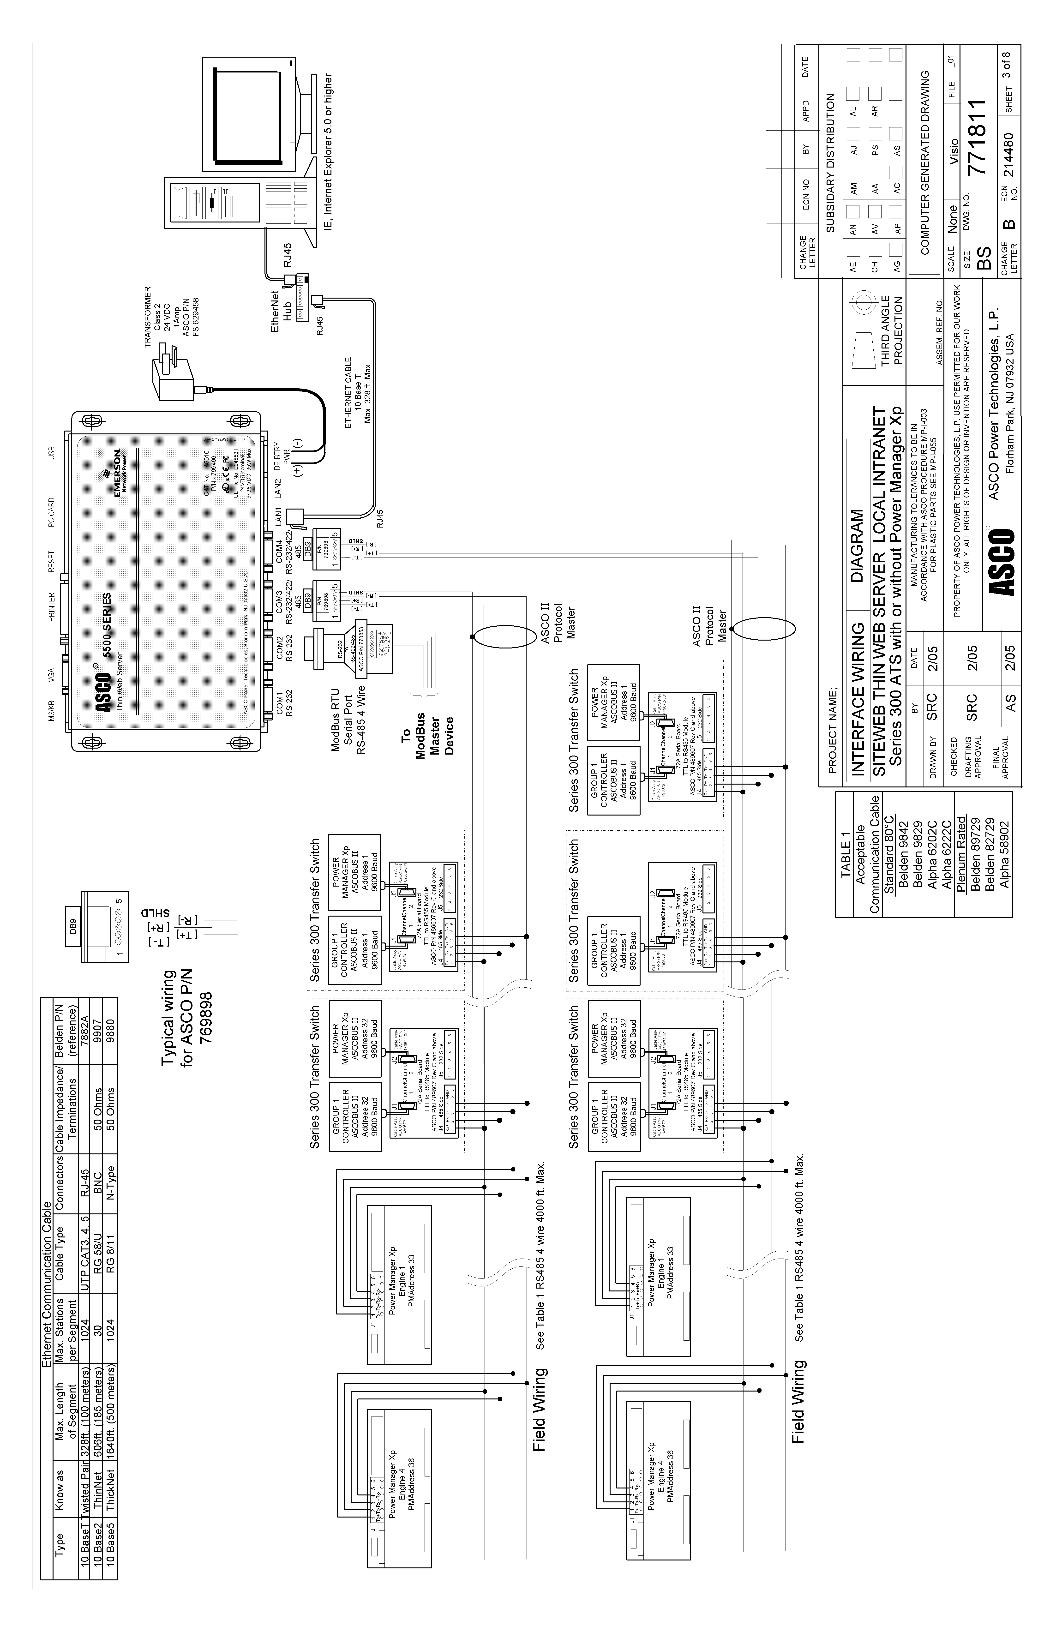 asco 7000 series ats wiring diagram collection